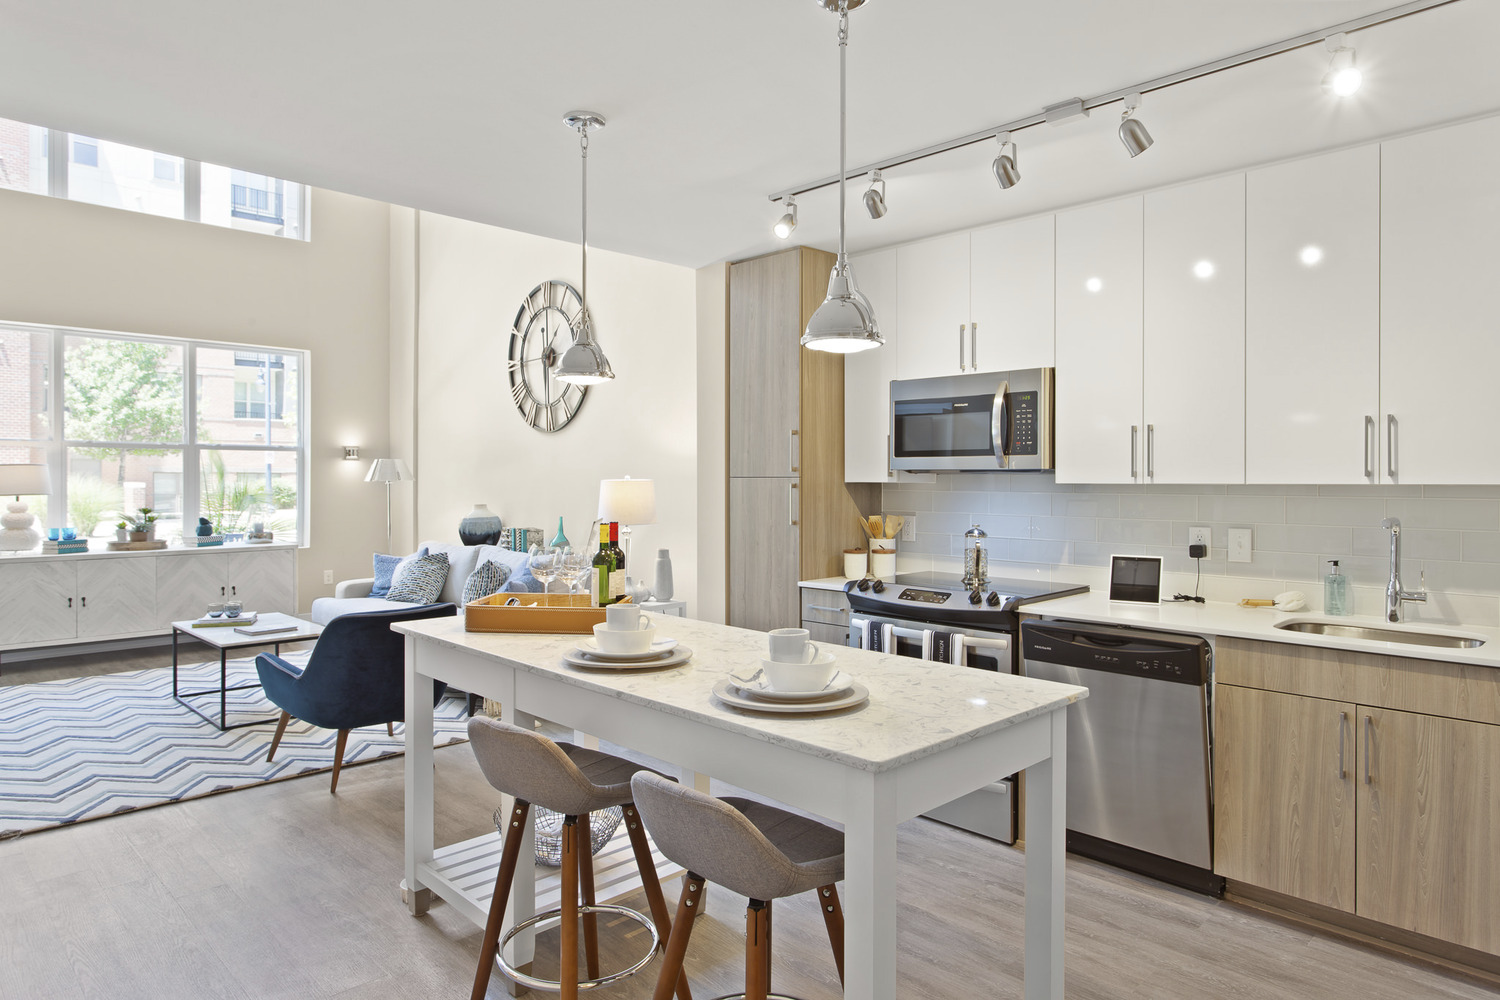 CBG builds The Haven at National Harbor, a LEED®-Certified Condominium Community with Amenities and Below-Grade Parking in National Harbor, MD - Image #10